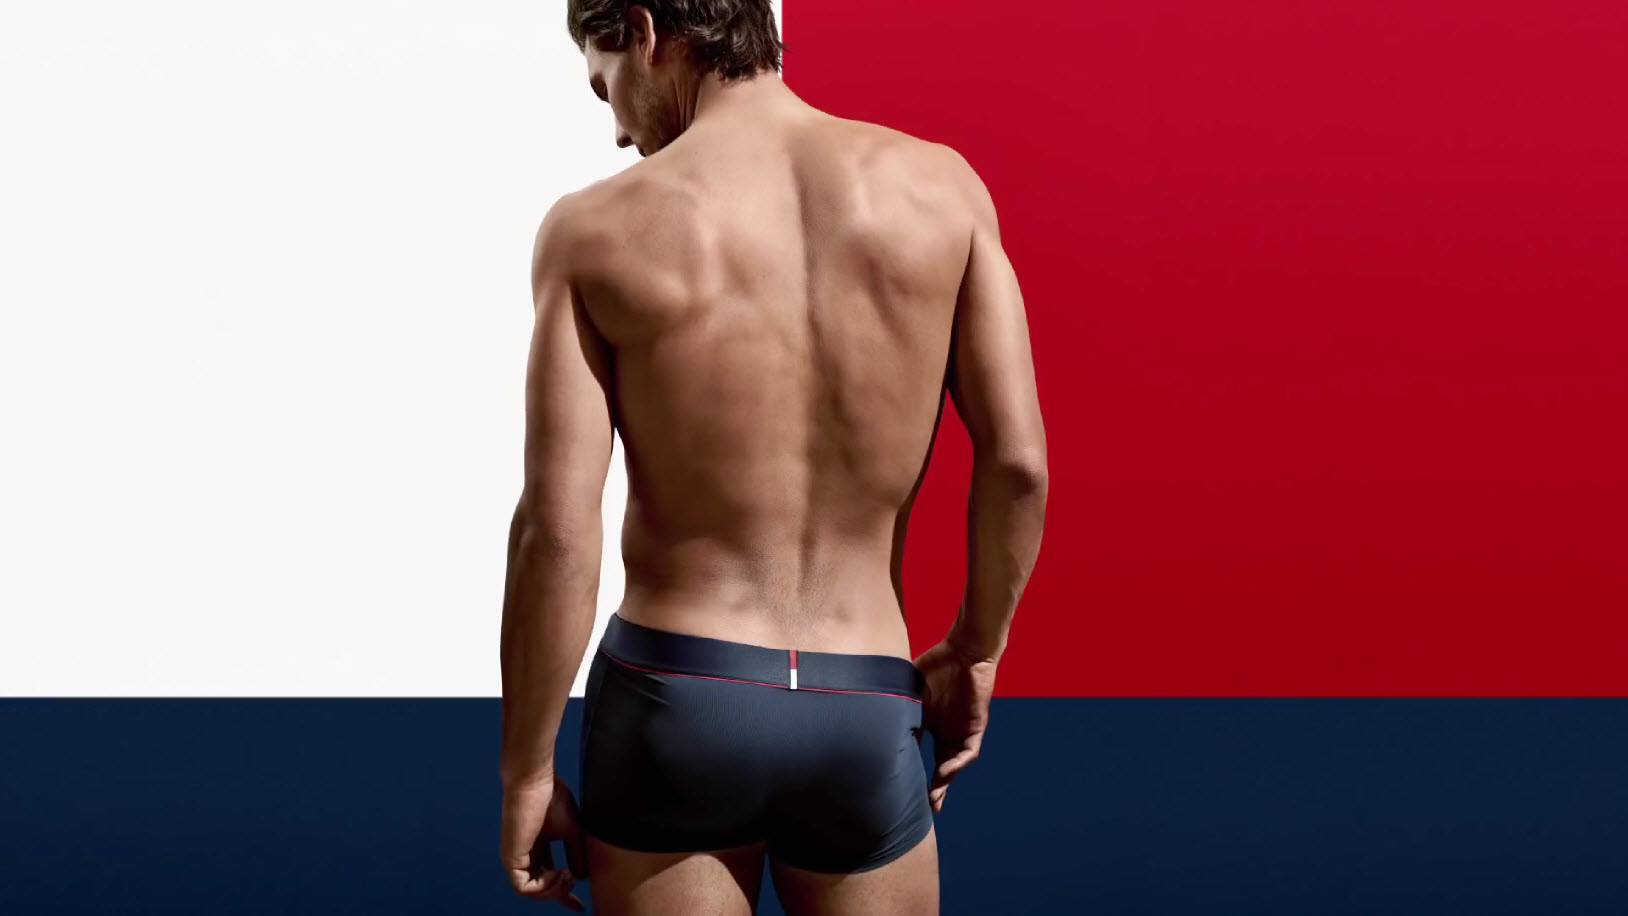 rafael nadal showing rear 2015